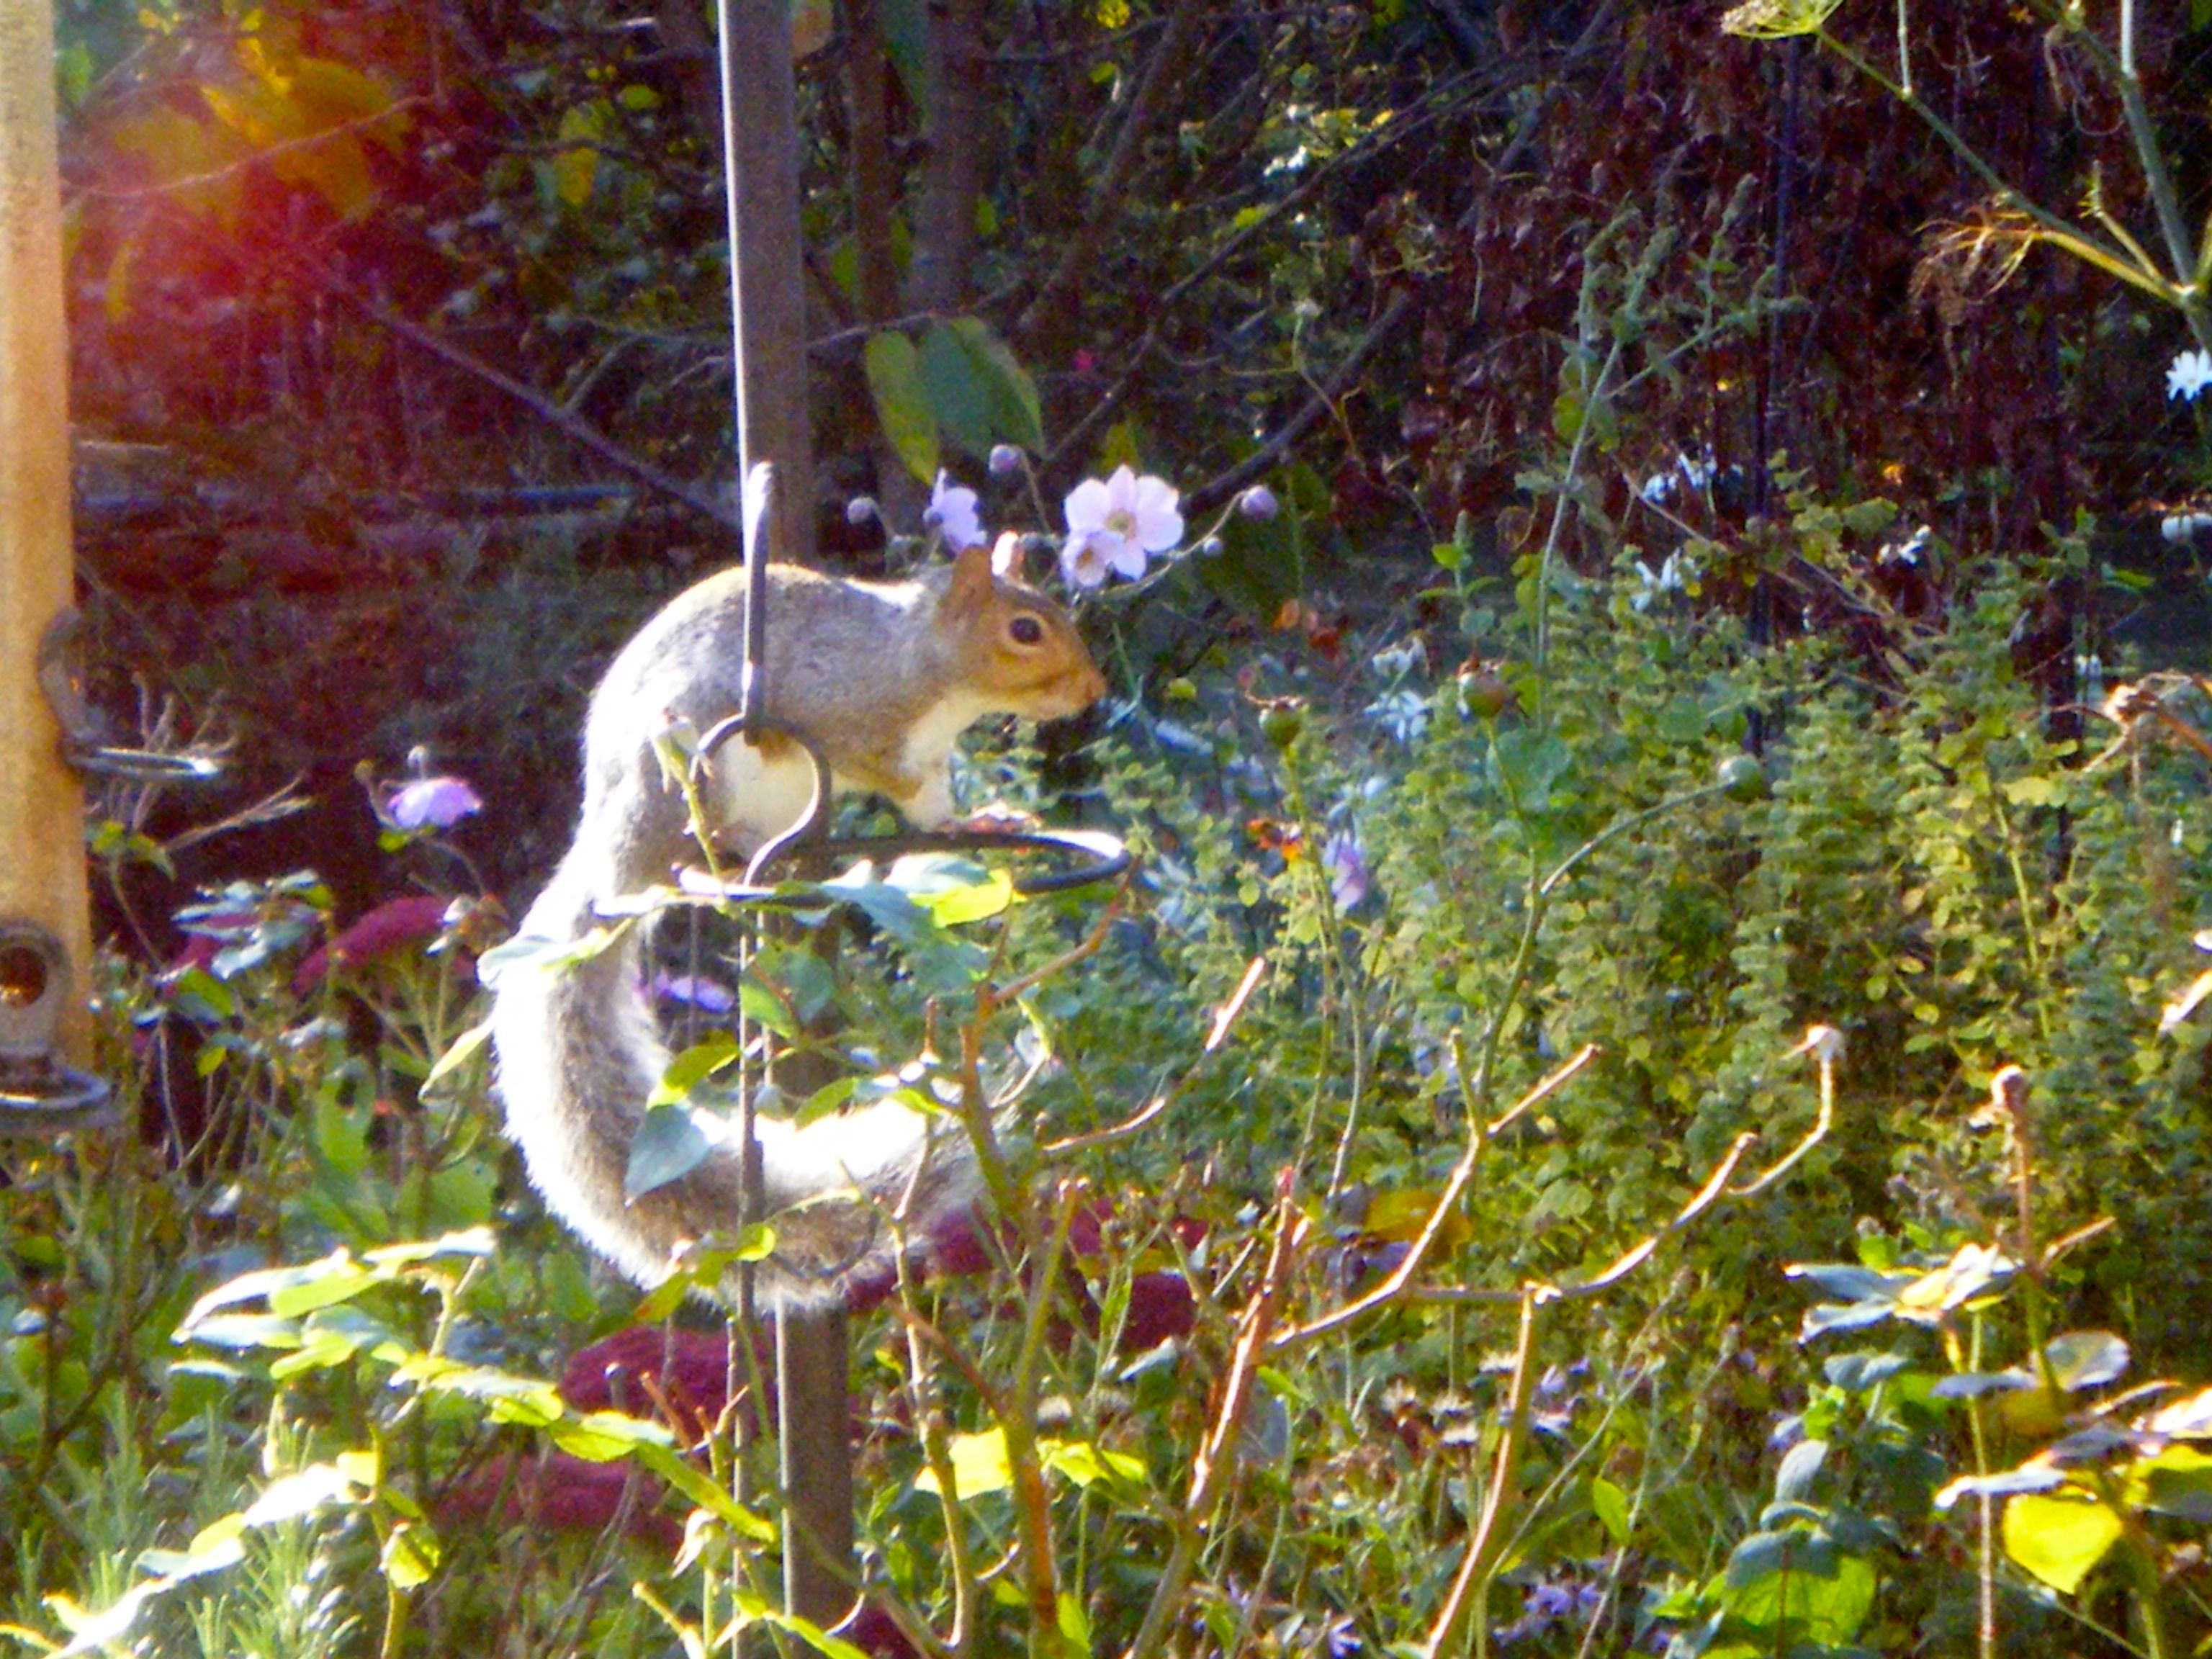 Image of a squirrel listening